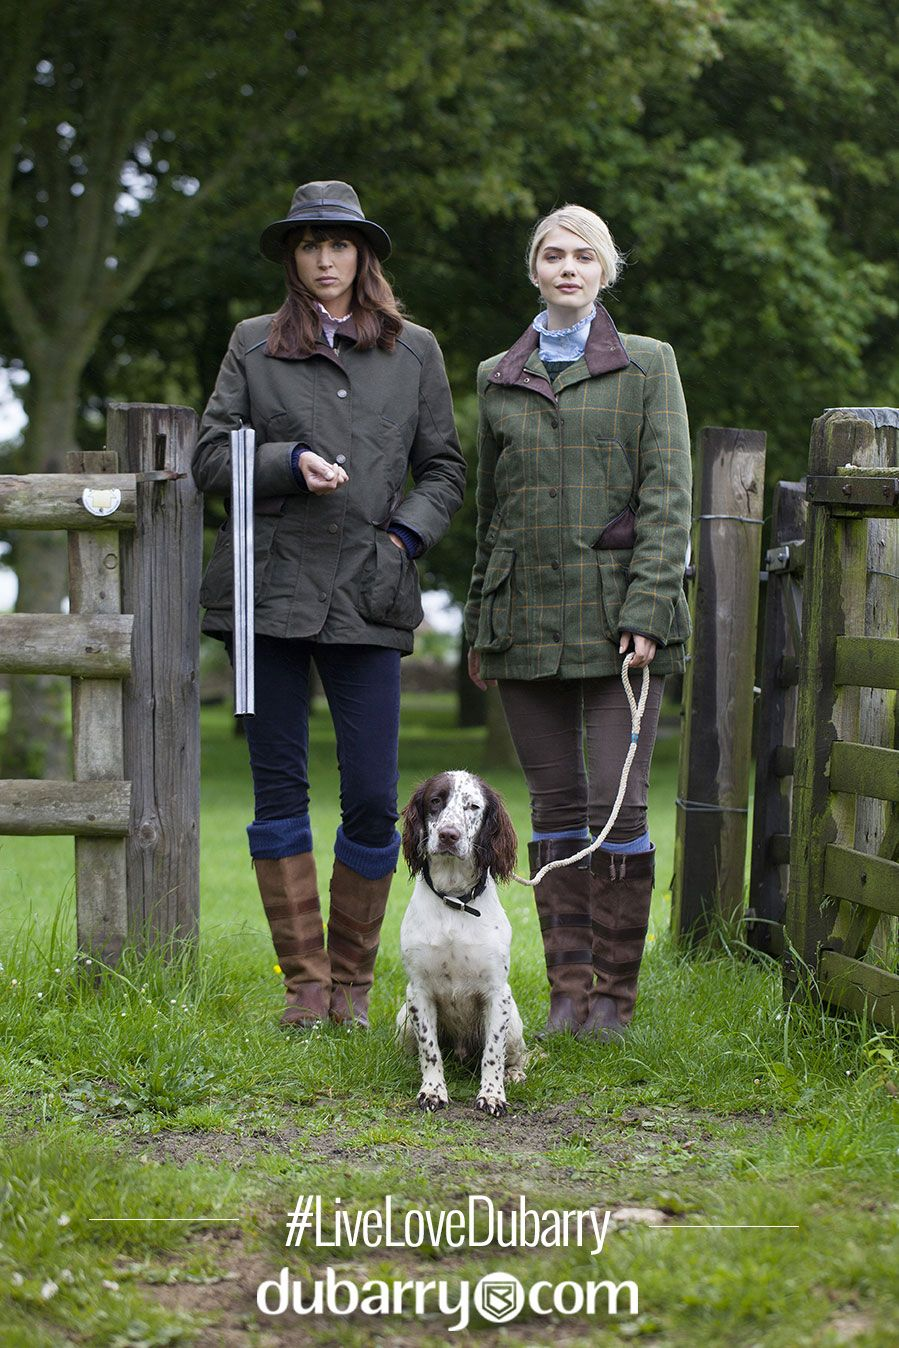 The New Dubarry Collection #OOTD. #LiveLoveDubarry outdoors in the stylish waterproof jackets for women.